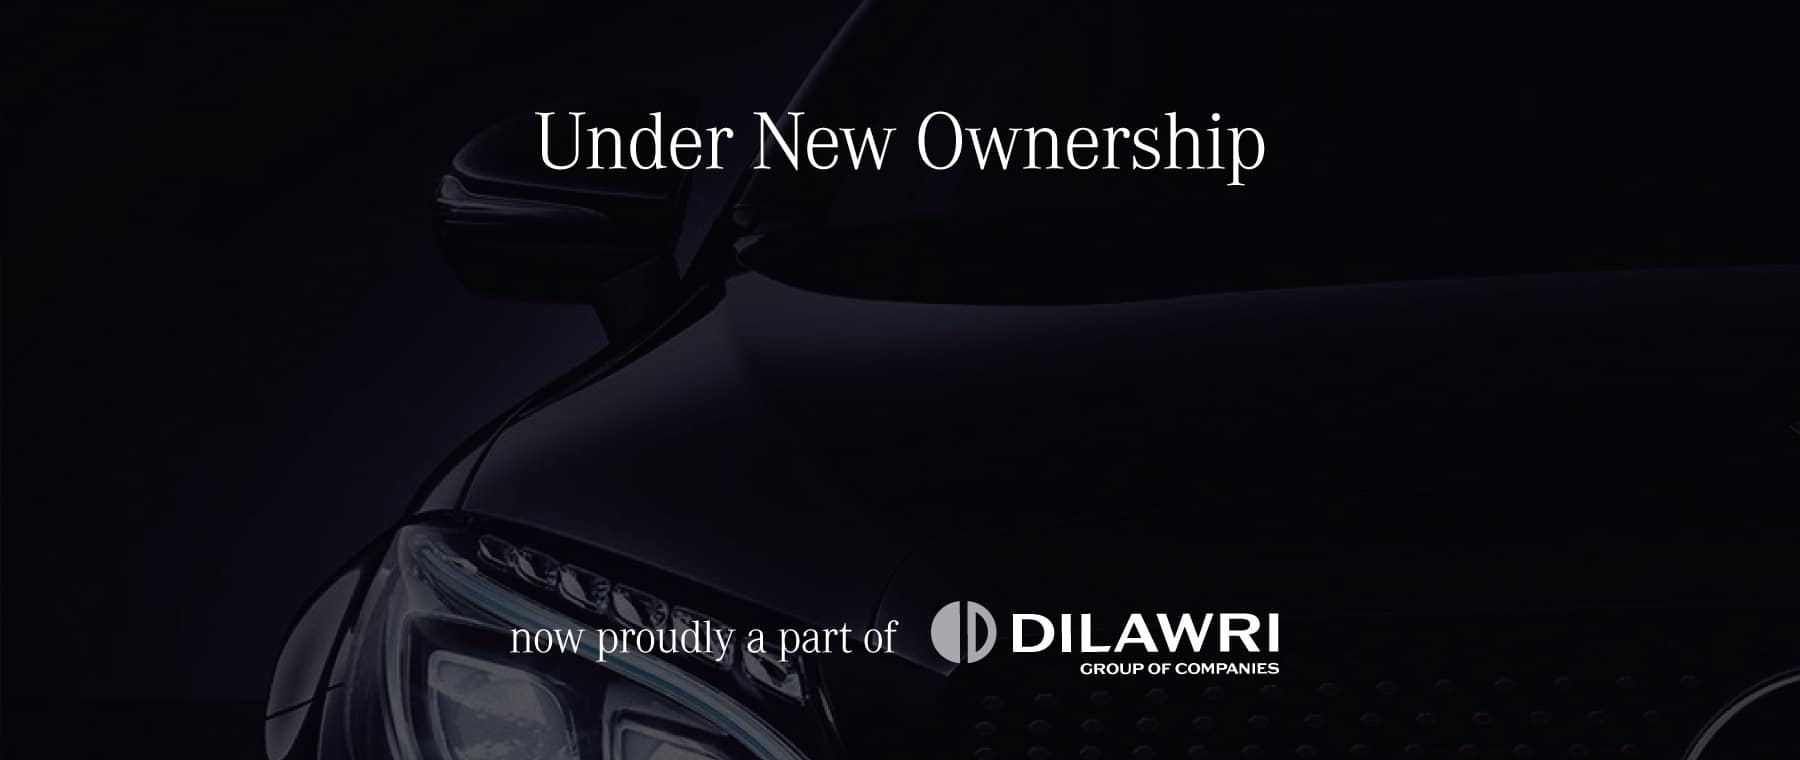 Under new ownership - proudly a part of Dilawri Group of Companies